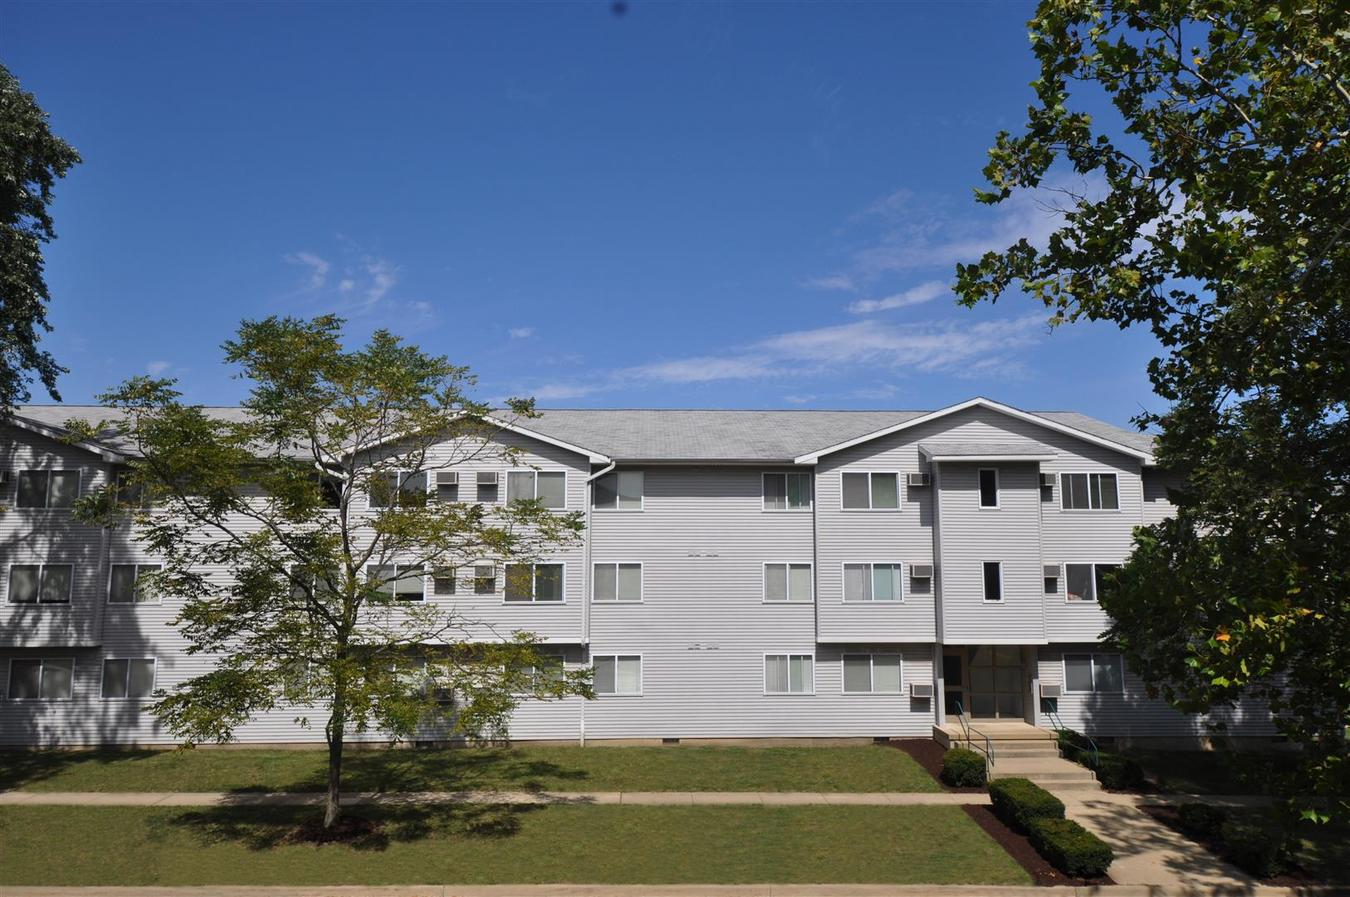 1 Bedroom 1 Bathroom Apartment for rent at 1002 W. Clark in Urbana, IL